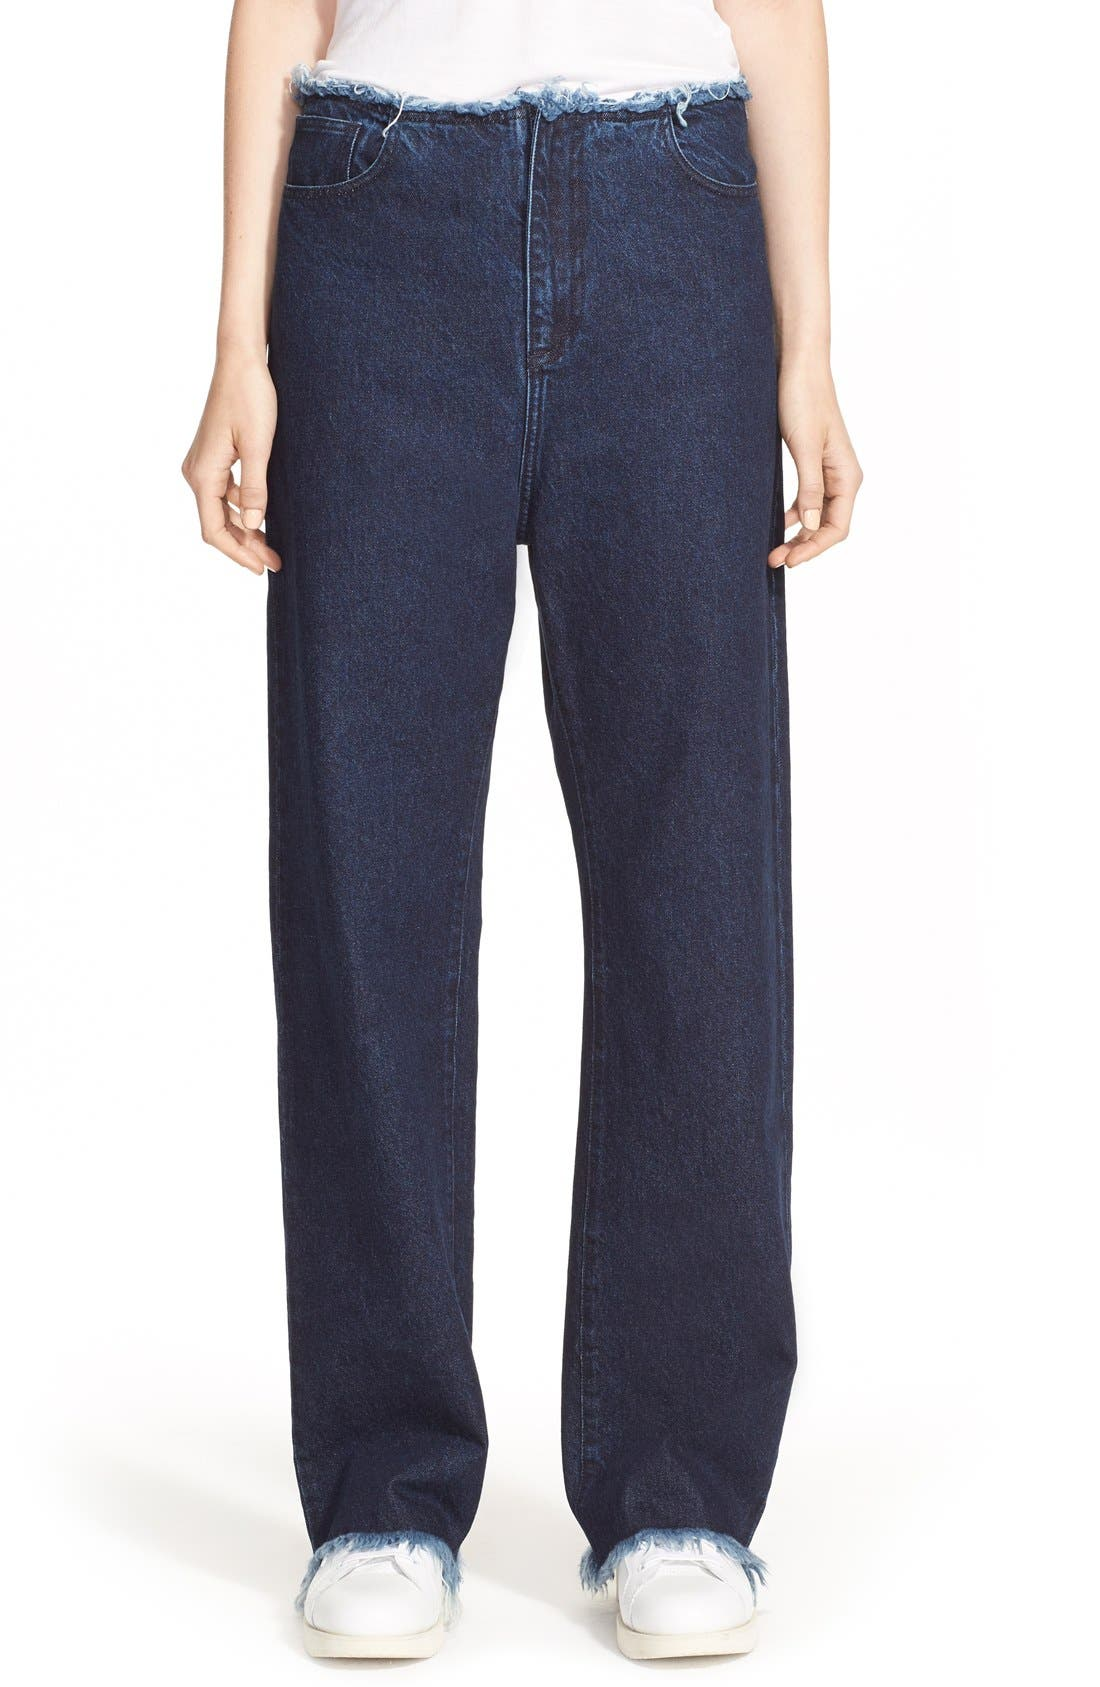 Alternate Image 1 Selected - Marques'Almeida Relaxed Boyfriend Jeans